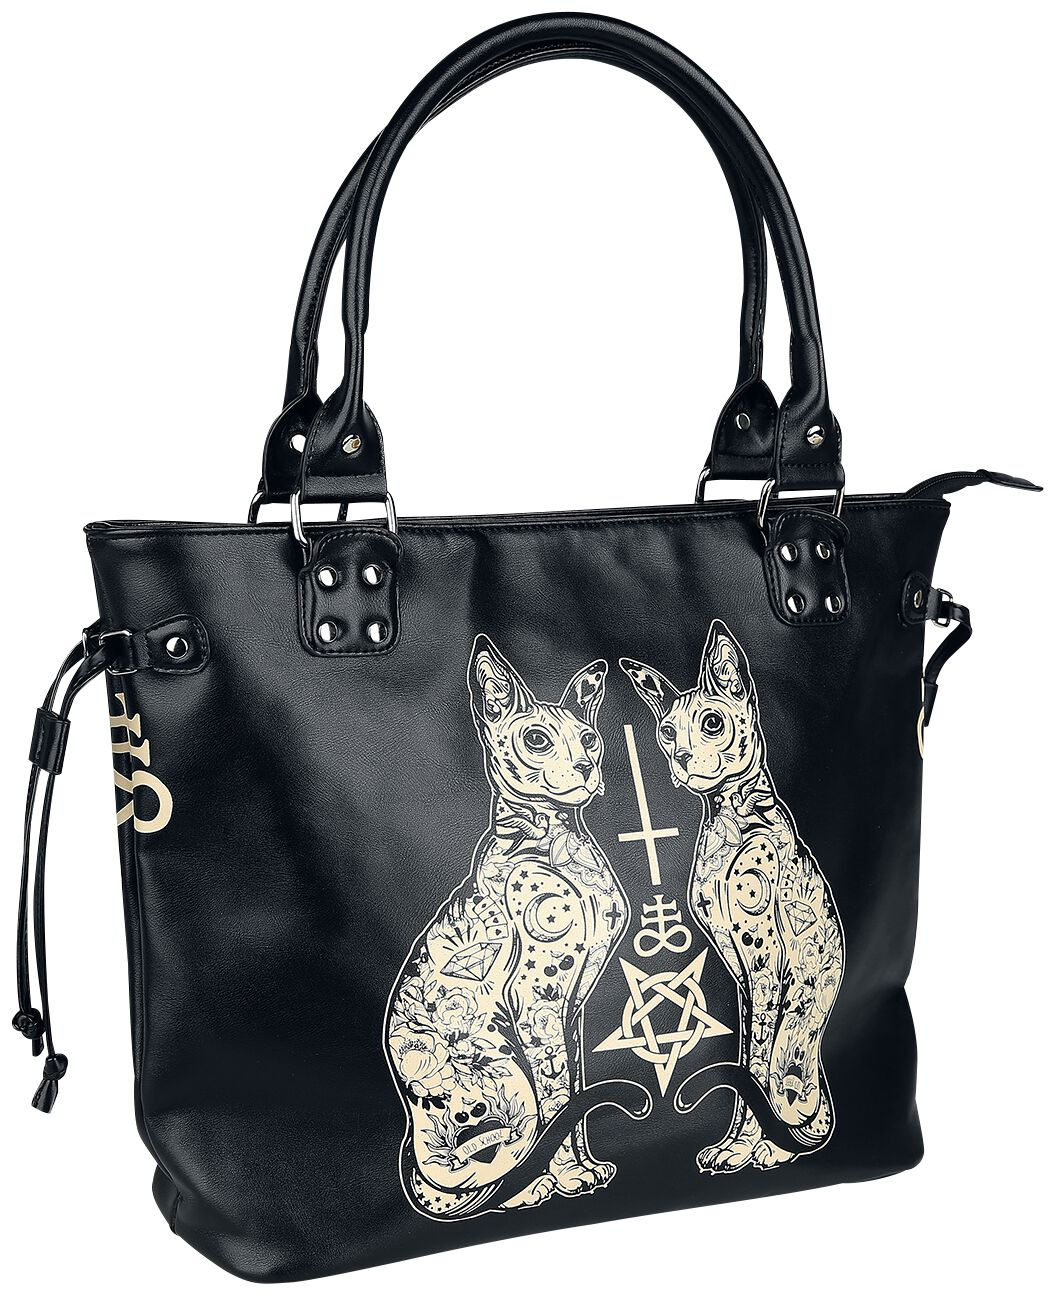 Image of   Banned Alternative Esoteric Cat Bag Håndtaske sort-hvid